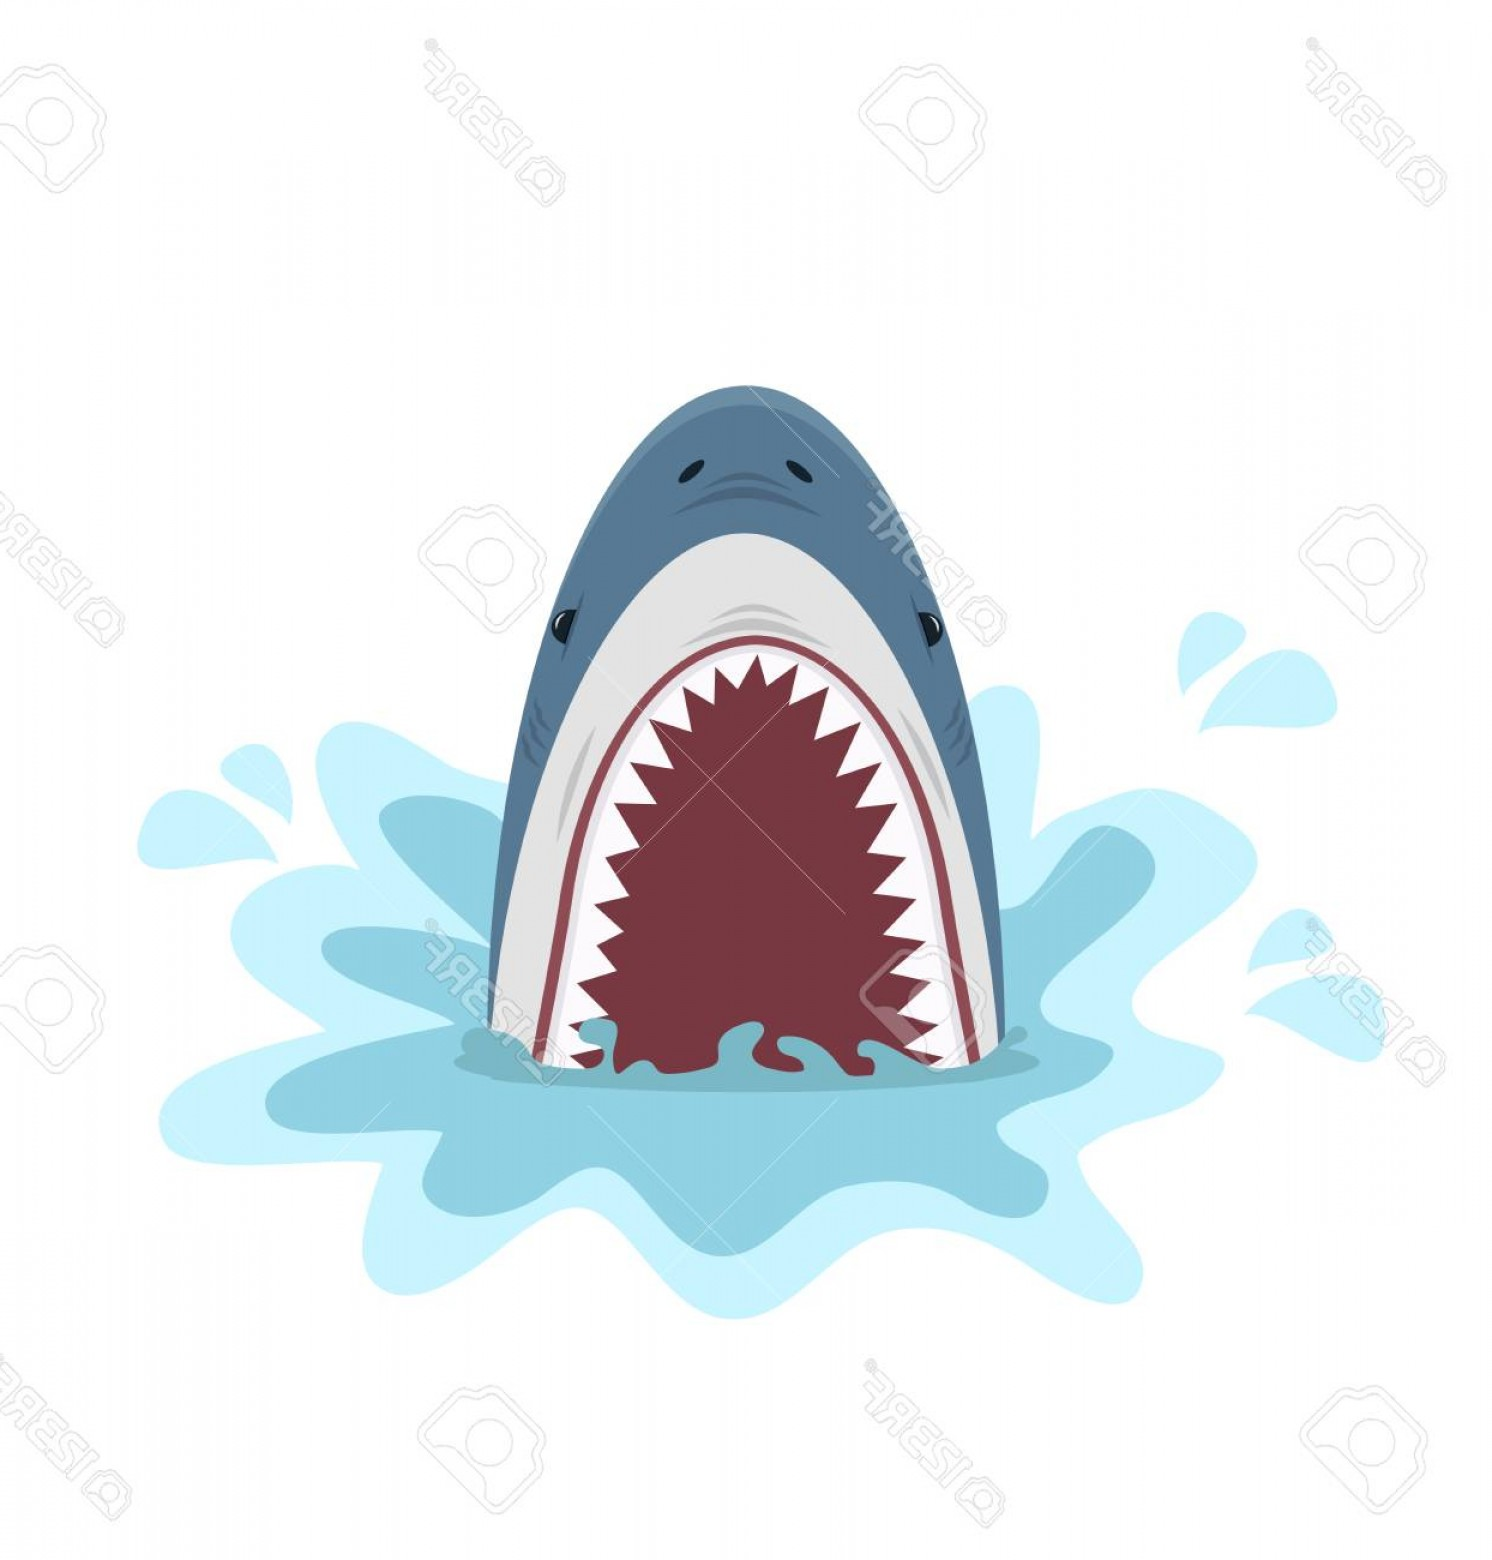 Bull Shark Jaws Vector Art: Photostock Vector A Shark With Open Jaws Isolated On Plain Background